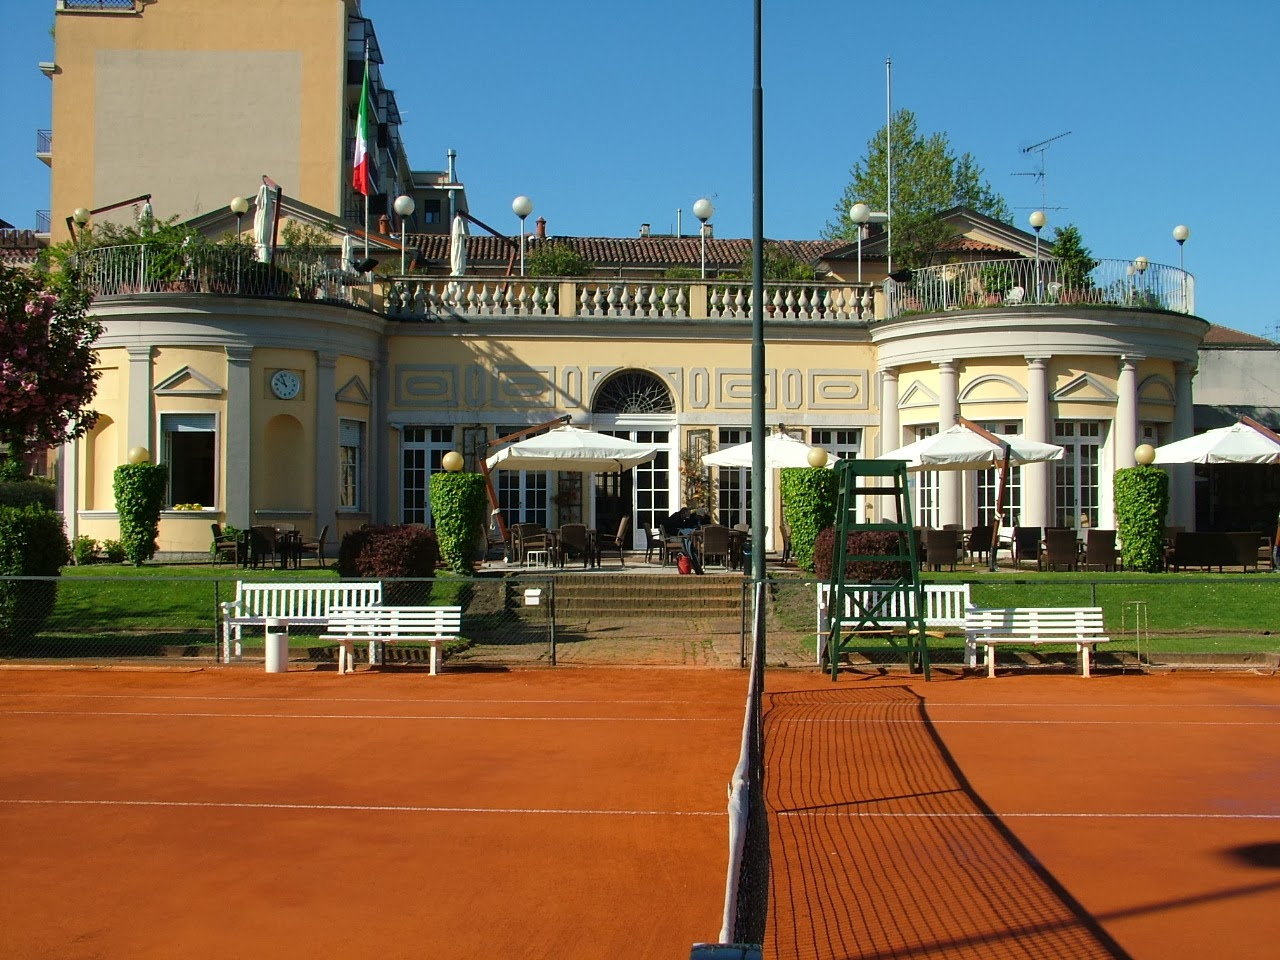 Tennis Club Milano Alberto Bonacossa - photo